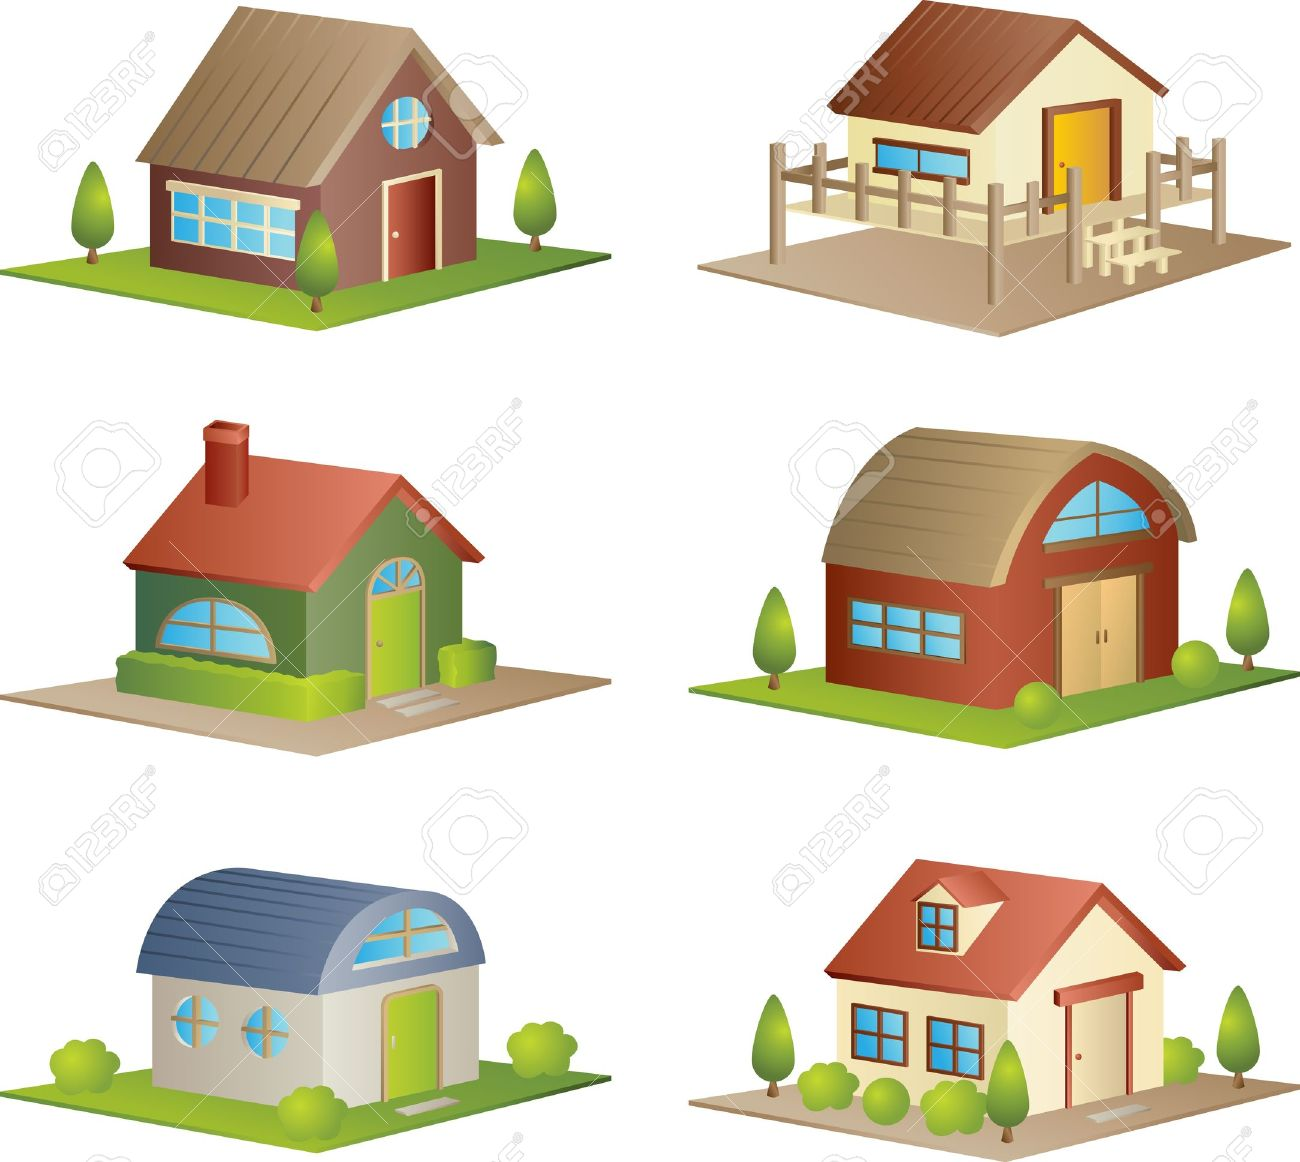 Enjoyable A Illustration Of A Collection Of Different Houses Royalty Free Largest Home Design Picture Inspirations Pitcheantrous